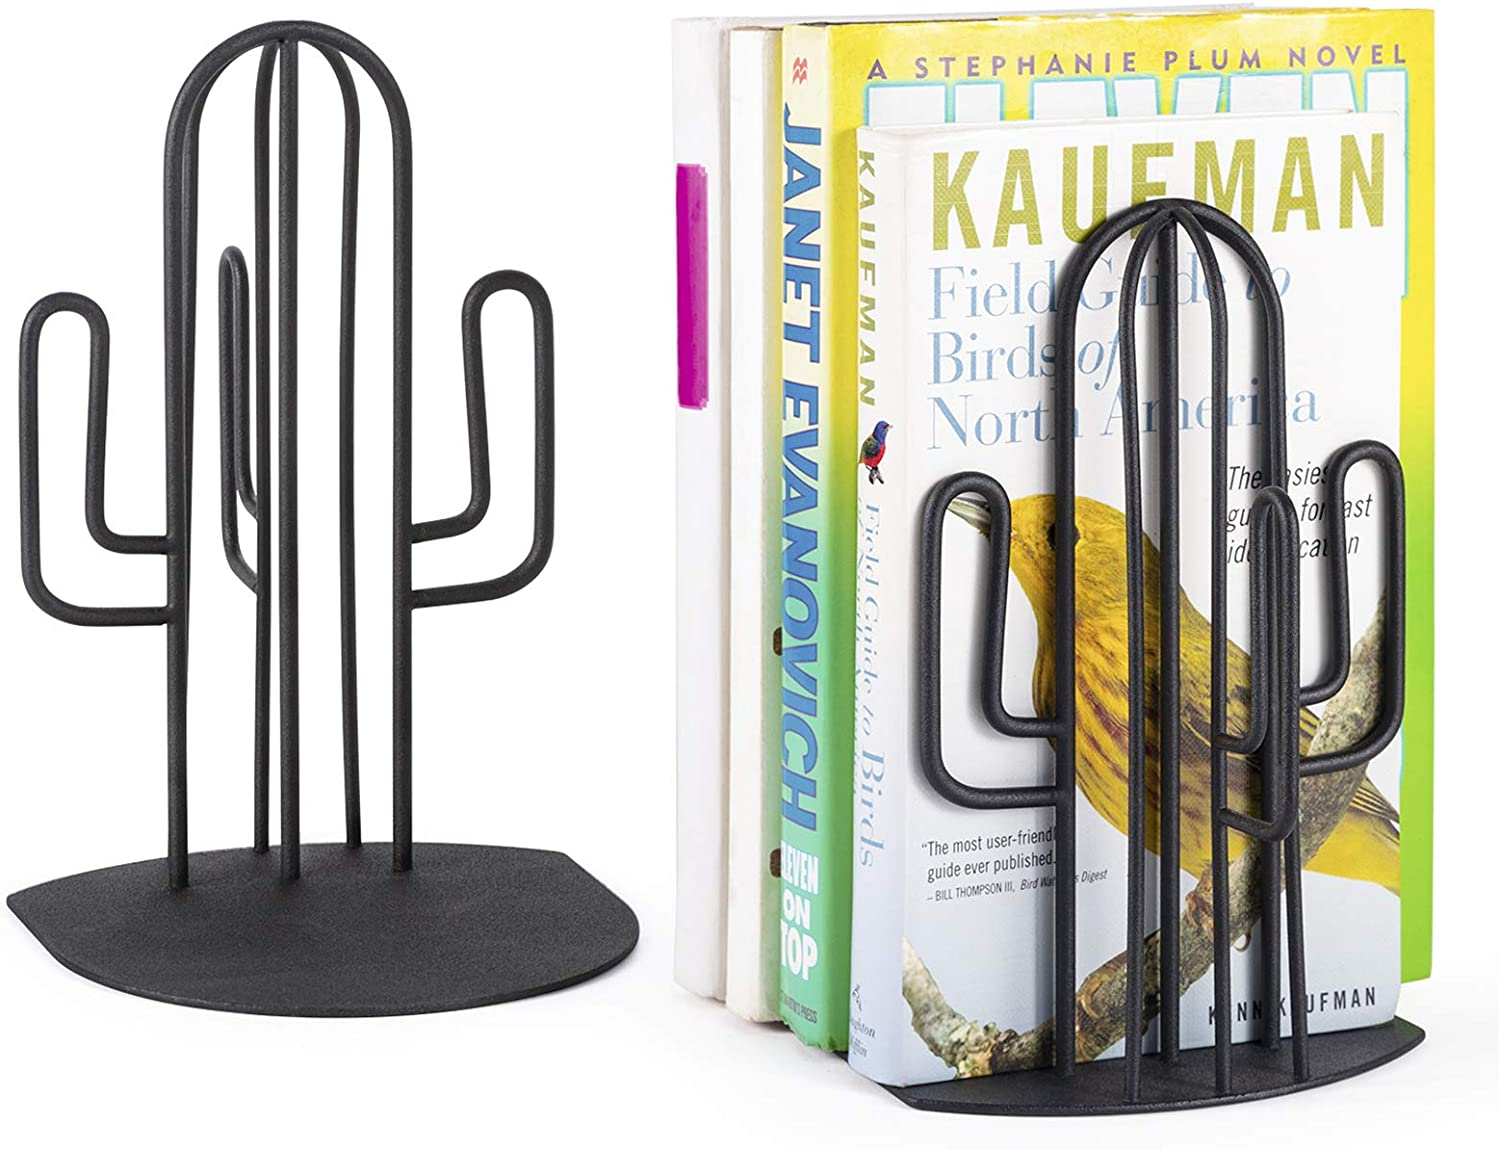 Alsonerbay Bookends Geometric Decorative Metal Book Stoppers Abstract Creative Book Supports, Desktop Book Display Organizer, Modern Book Holders, Cactus Book Ends for Office 1 Pair (Black)